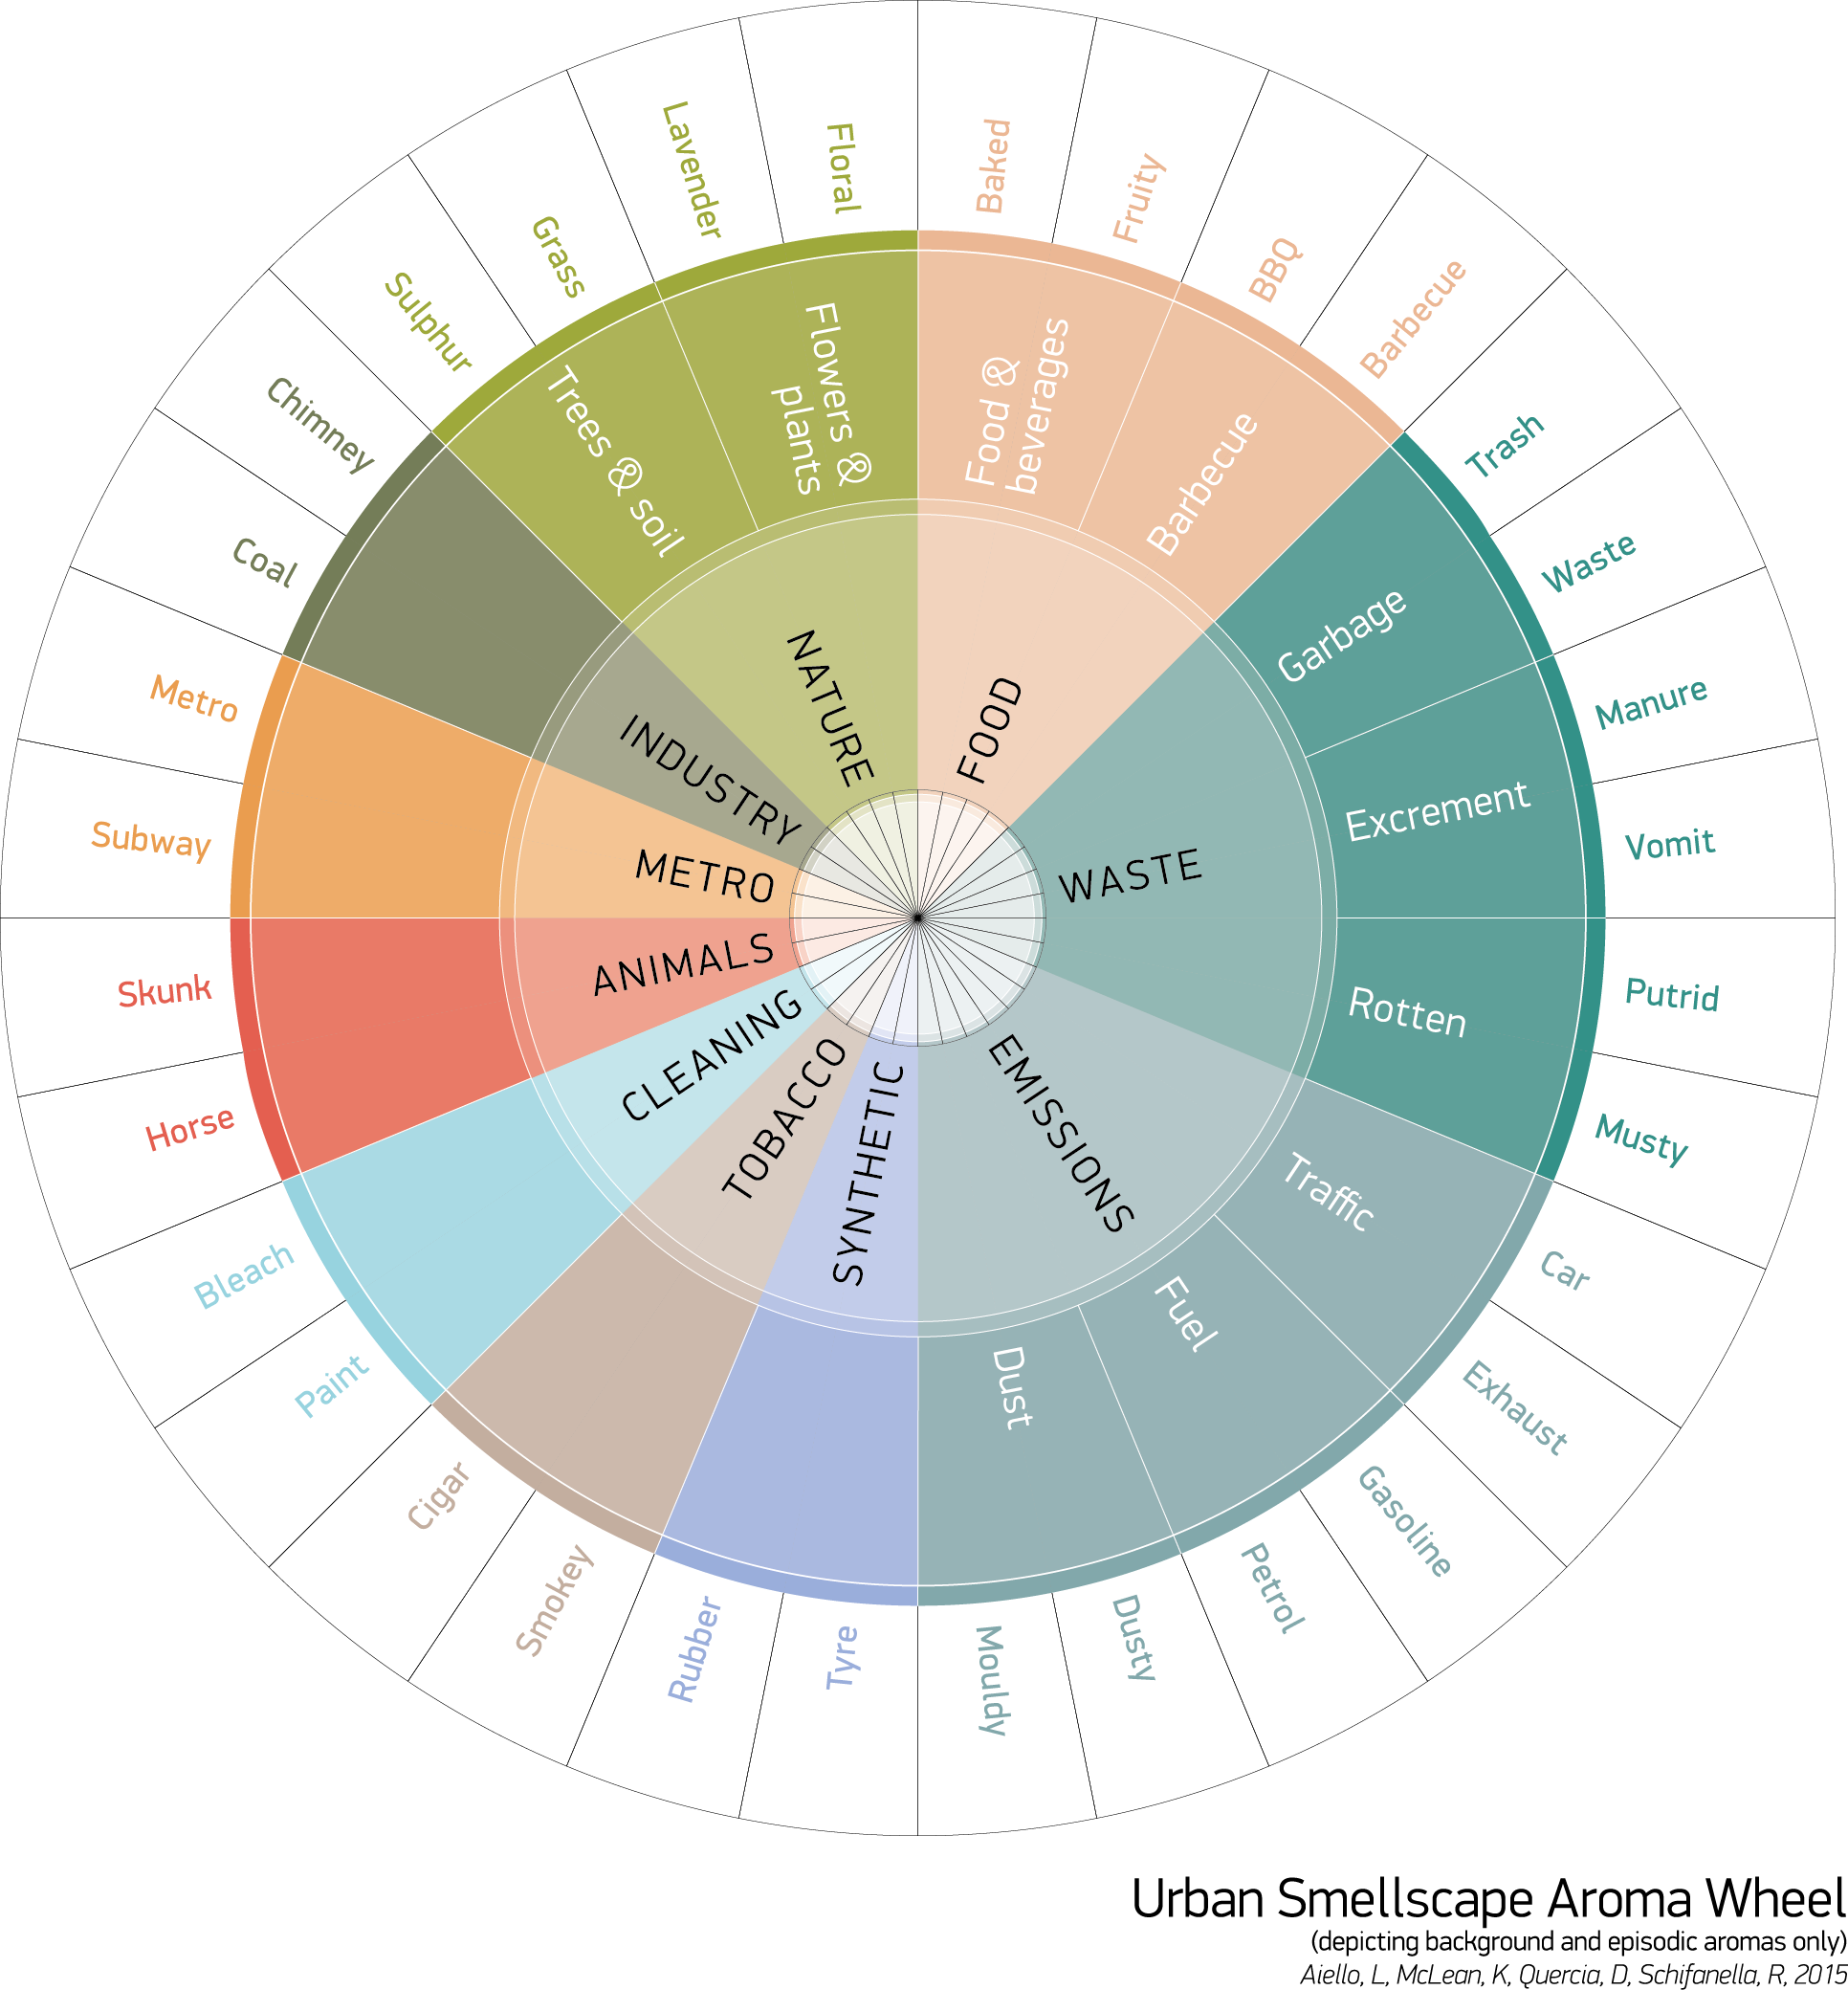 Wheel of aromas for better understanding urban smells.